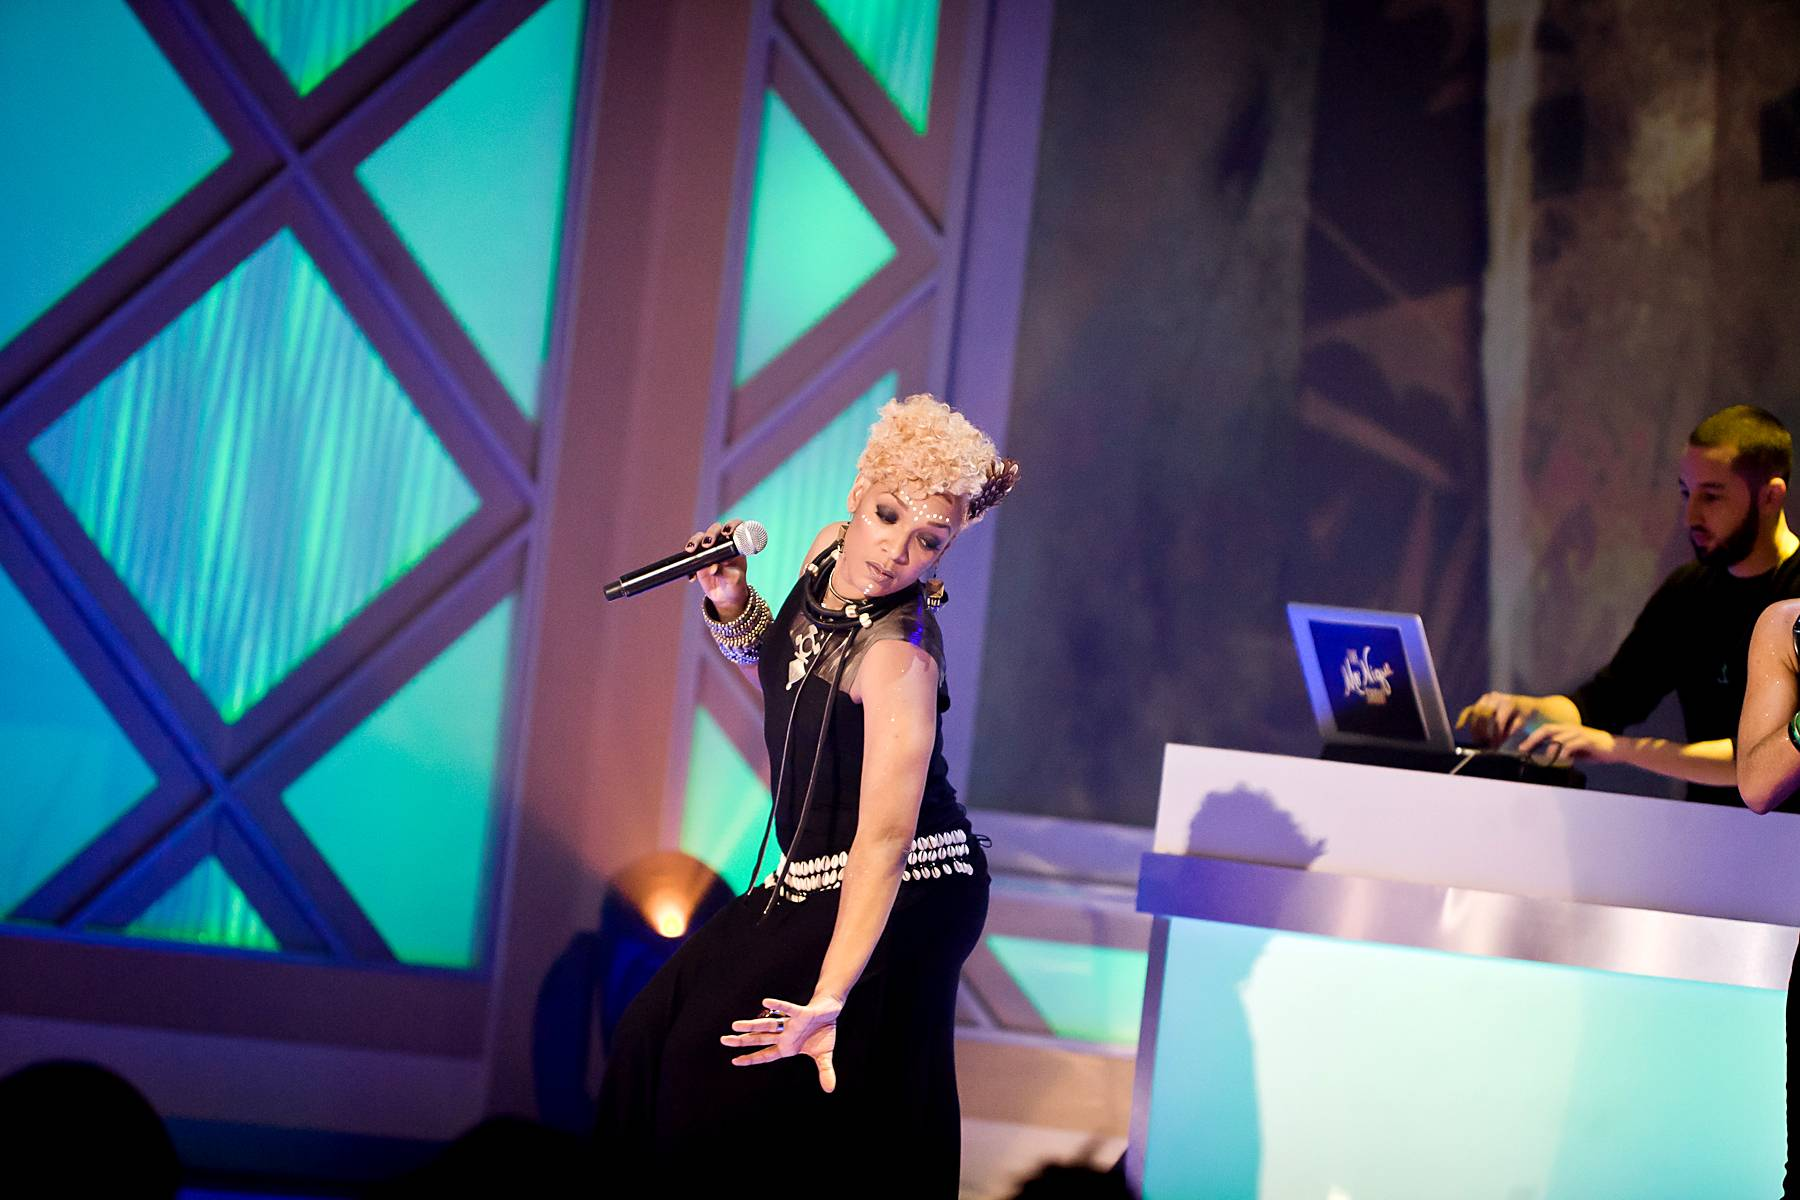 Waiting for the DJ - H?l?ne breaks it down while DJ J. Period holds down the wheels of steel.(Photo: Darnell Williams/BET)